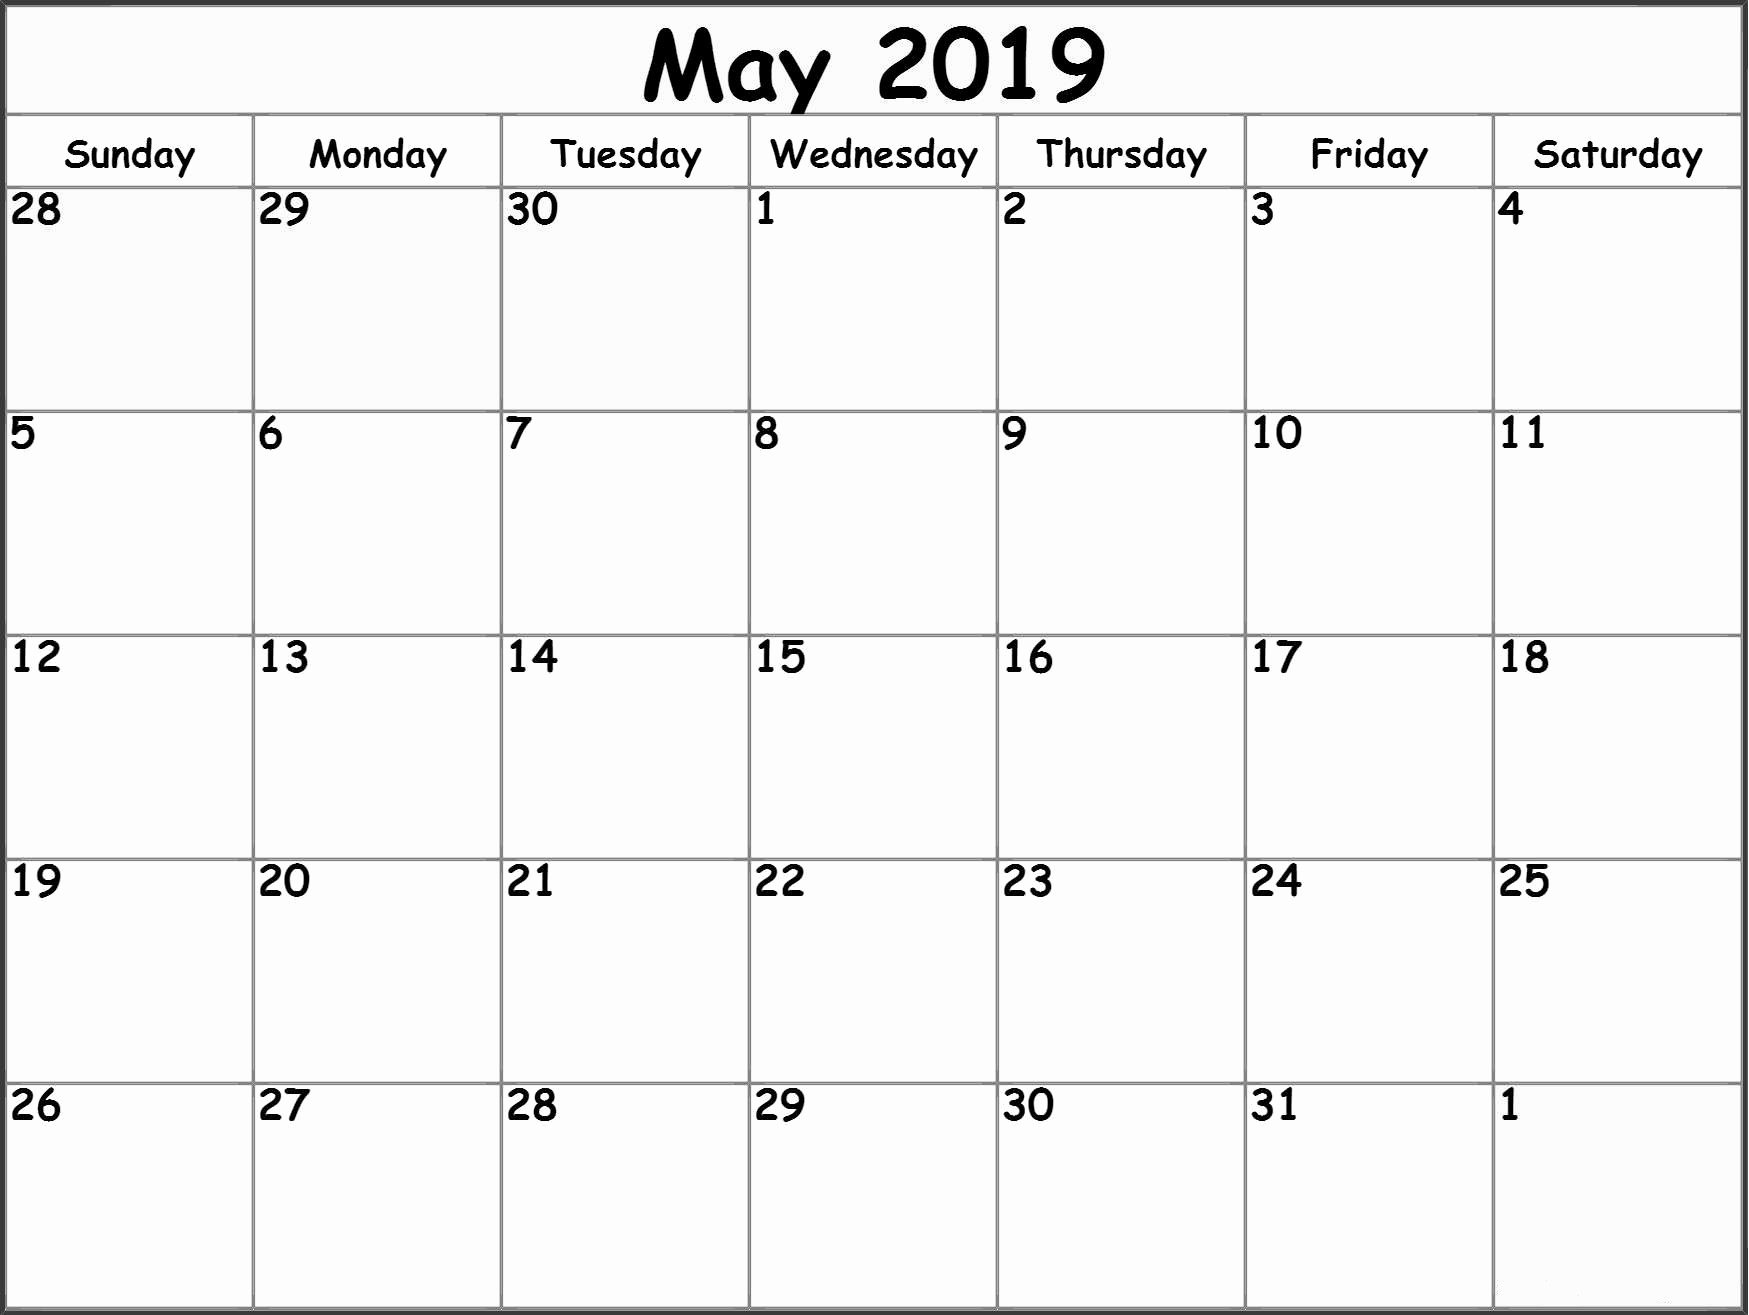 Microsoft Calendar Templates 2019 Lovely May 2019 Printable Calendar Templates Free Blank Pdf